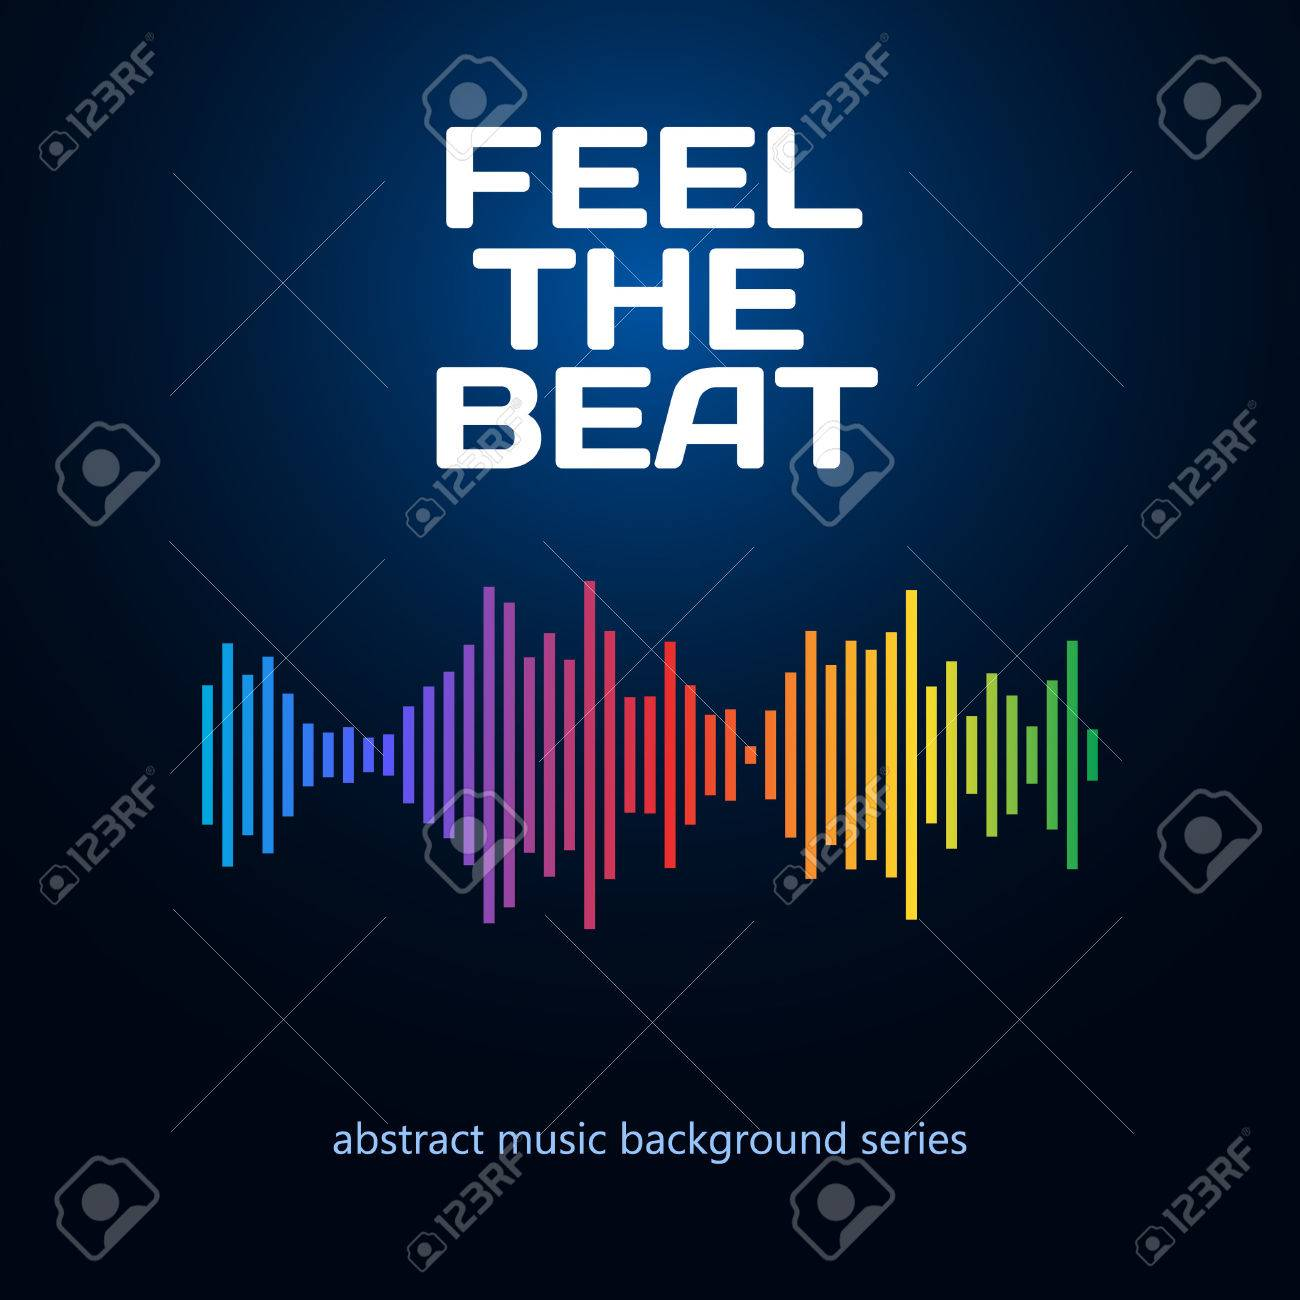 Equalizer icon. Can be used as logo to music album, dj set,concert banner. Vector illustration. - 50263296